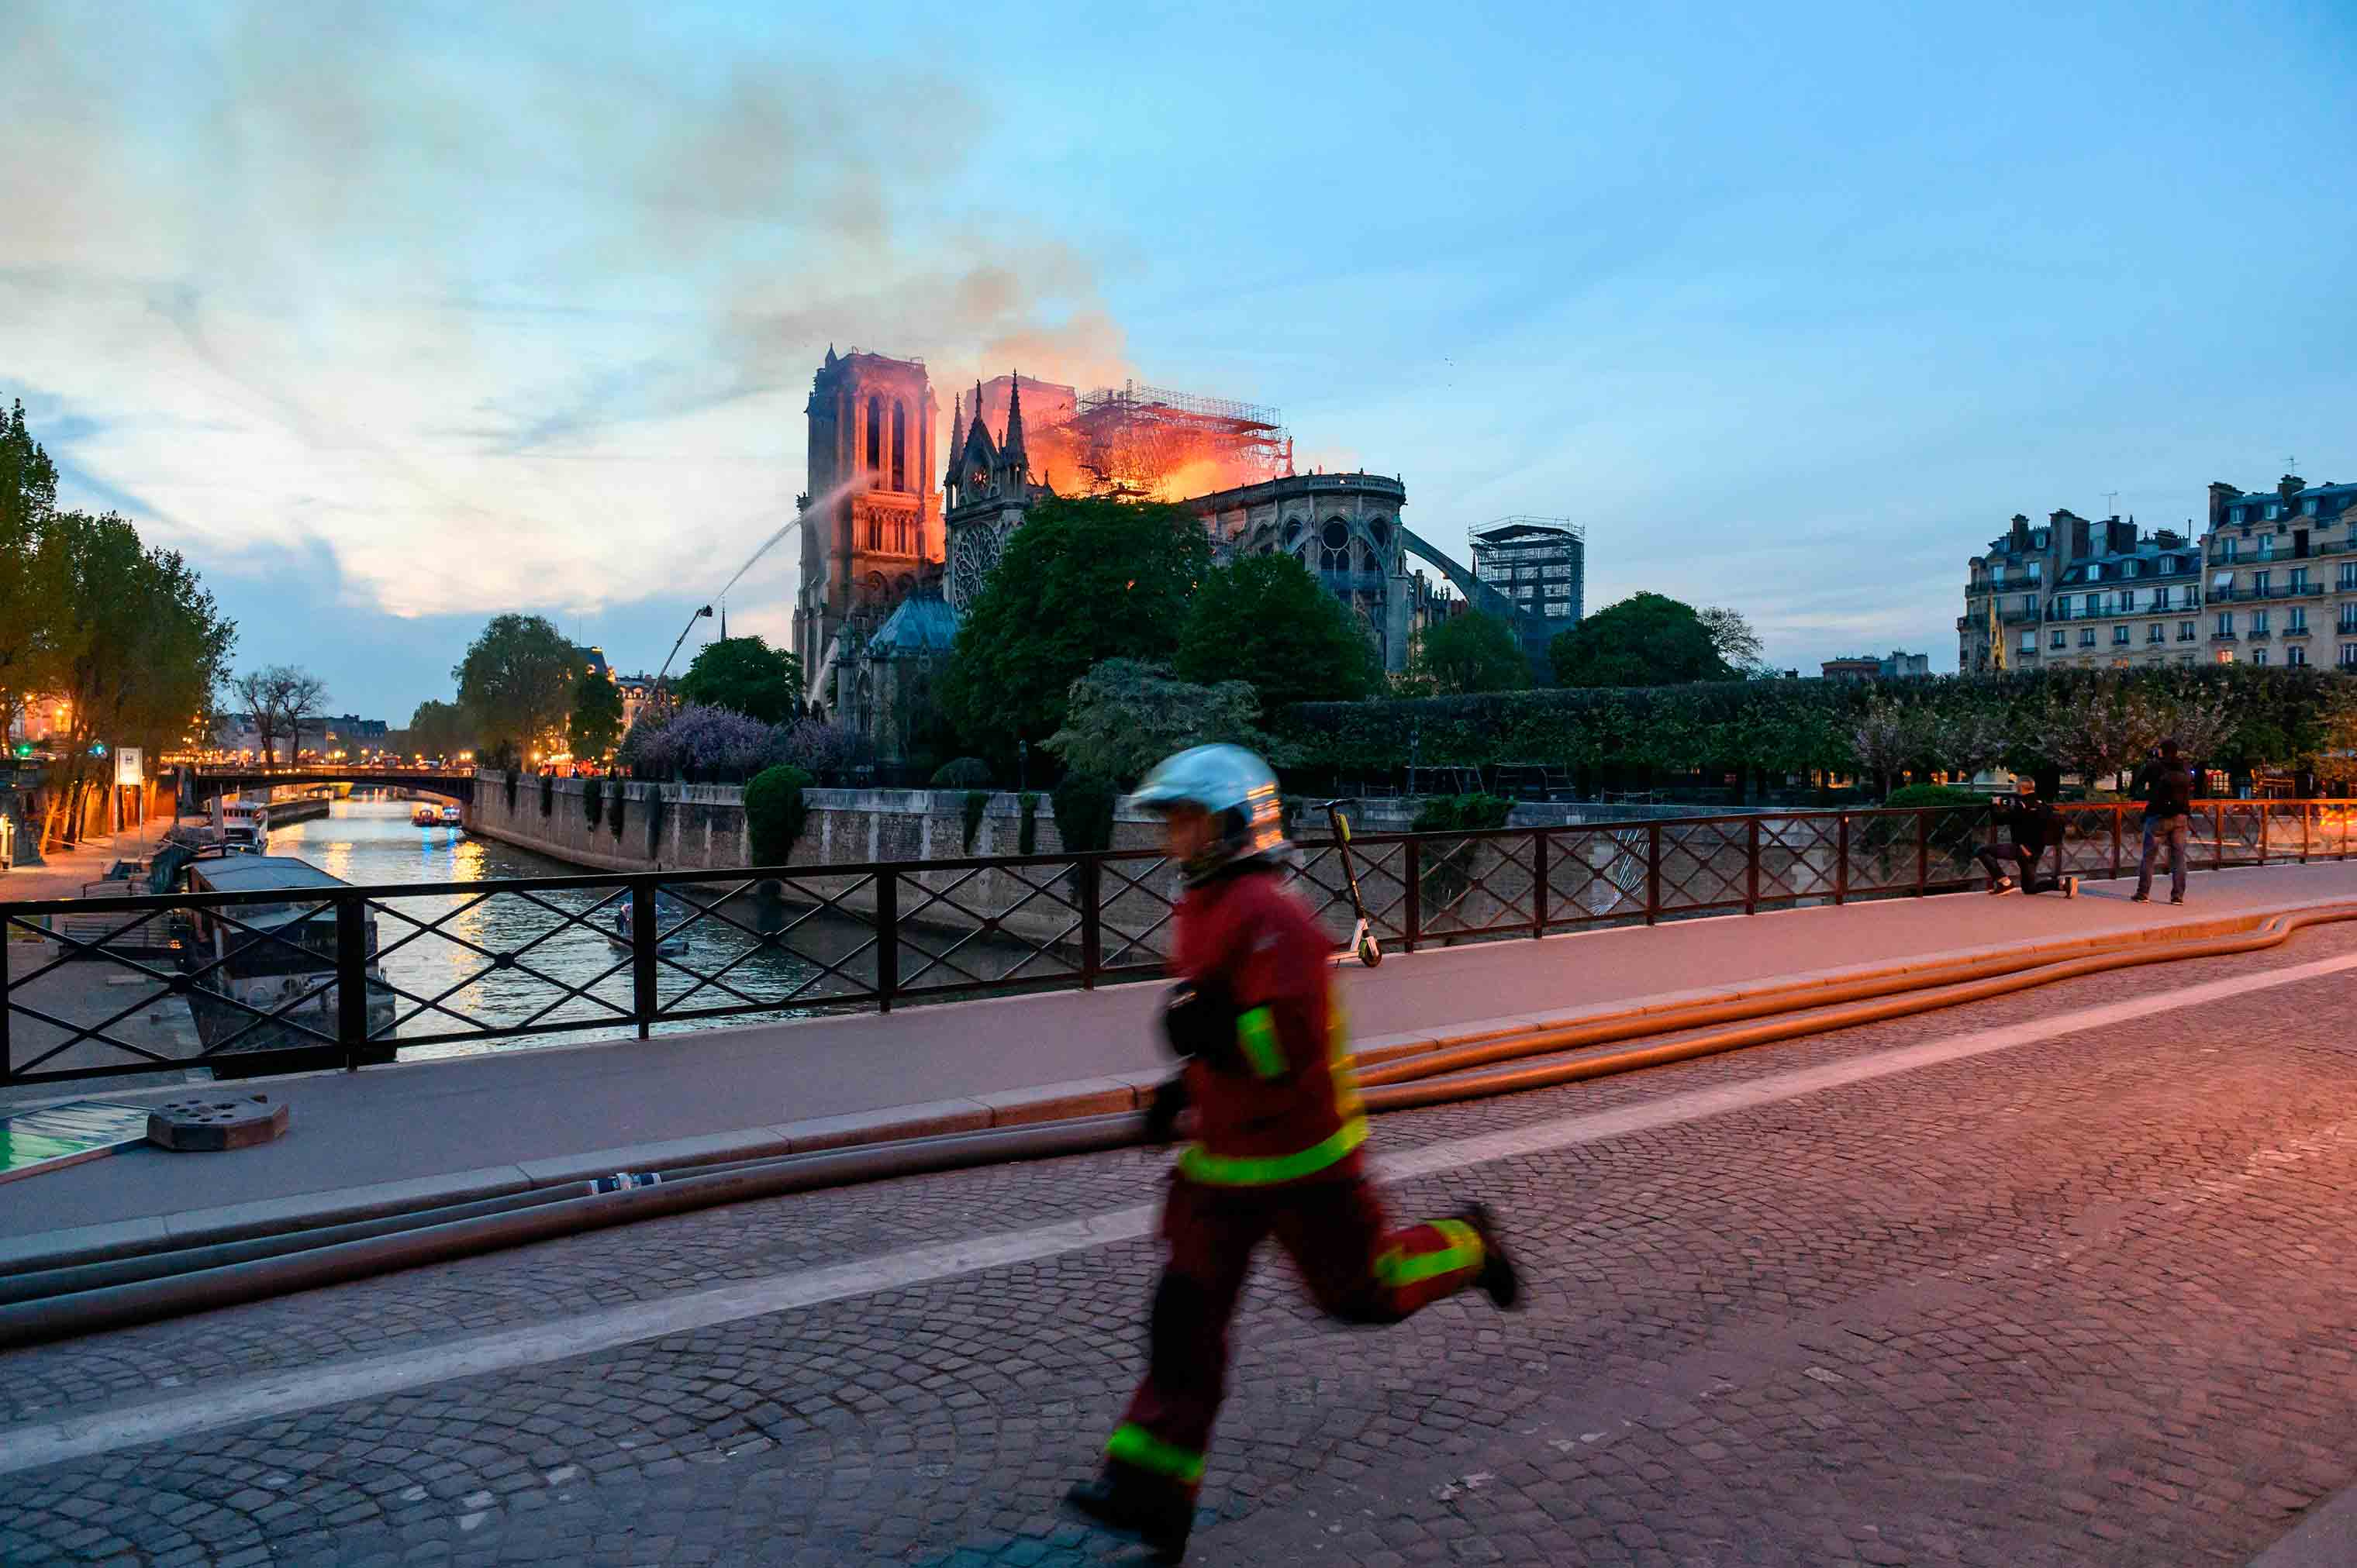 The Cathedral of Notre-Dame Cathedral on fire, Paris, April 15, 2019.